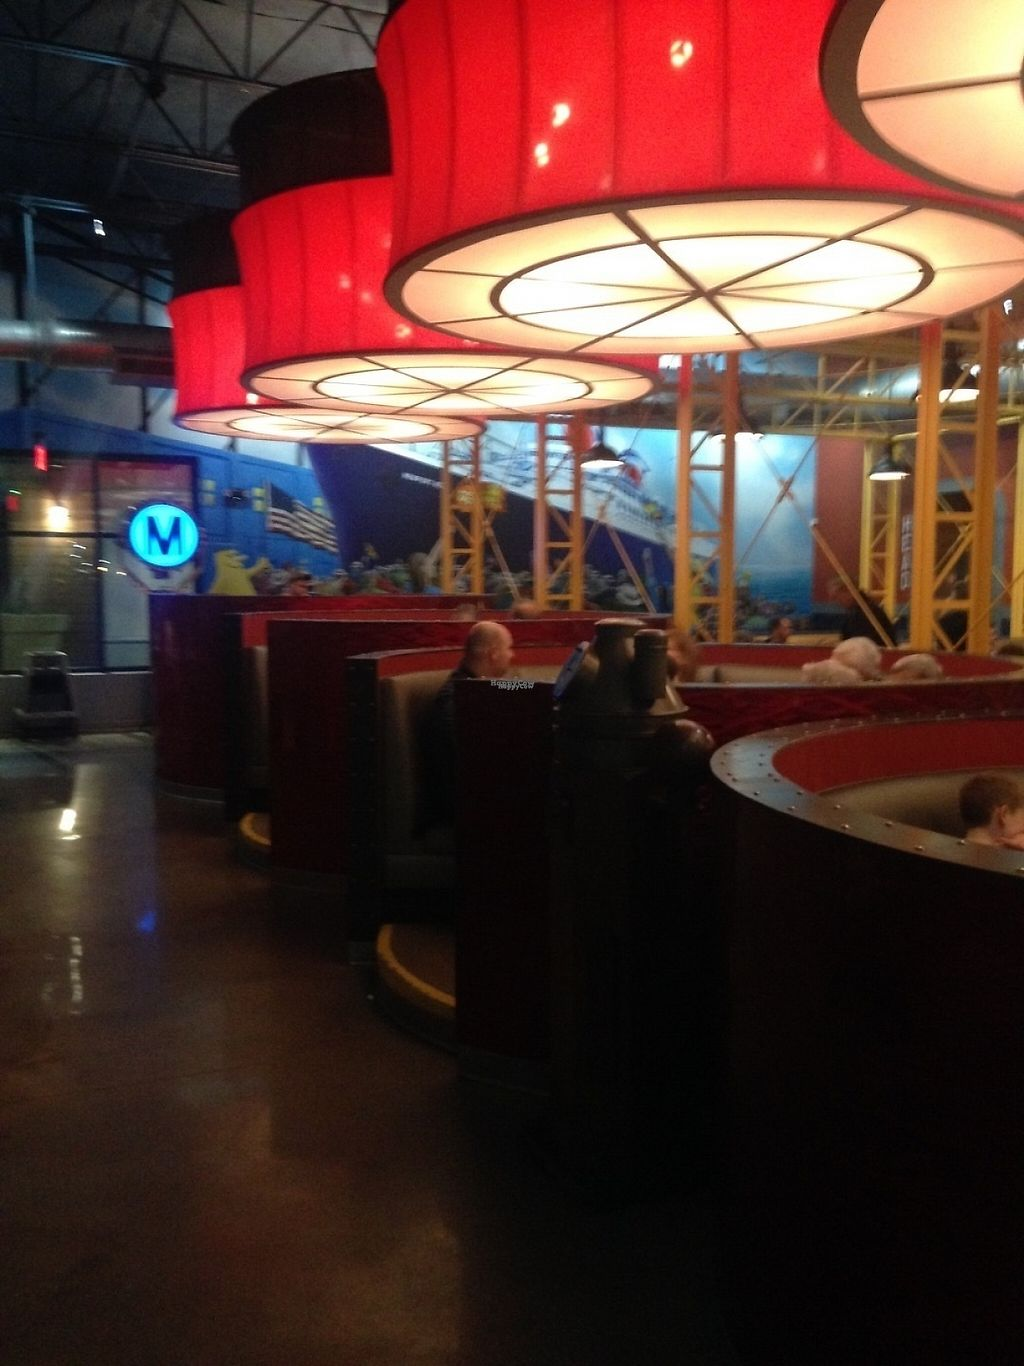 """Photo of Mellow Mushroom   by <a href=""""/members/profile/BreannaWhite"""">BreannaWhite</a> <br/>interior <br/> November 11, 2016  - <a href='/contact/abuse/image/67729/188775'>Report</a>"""